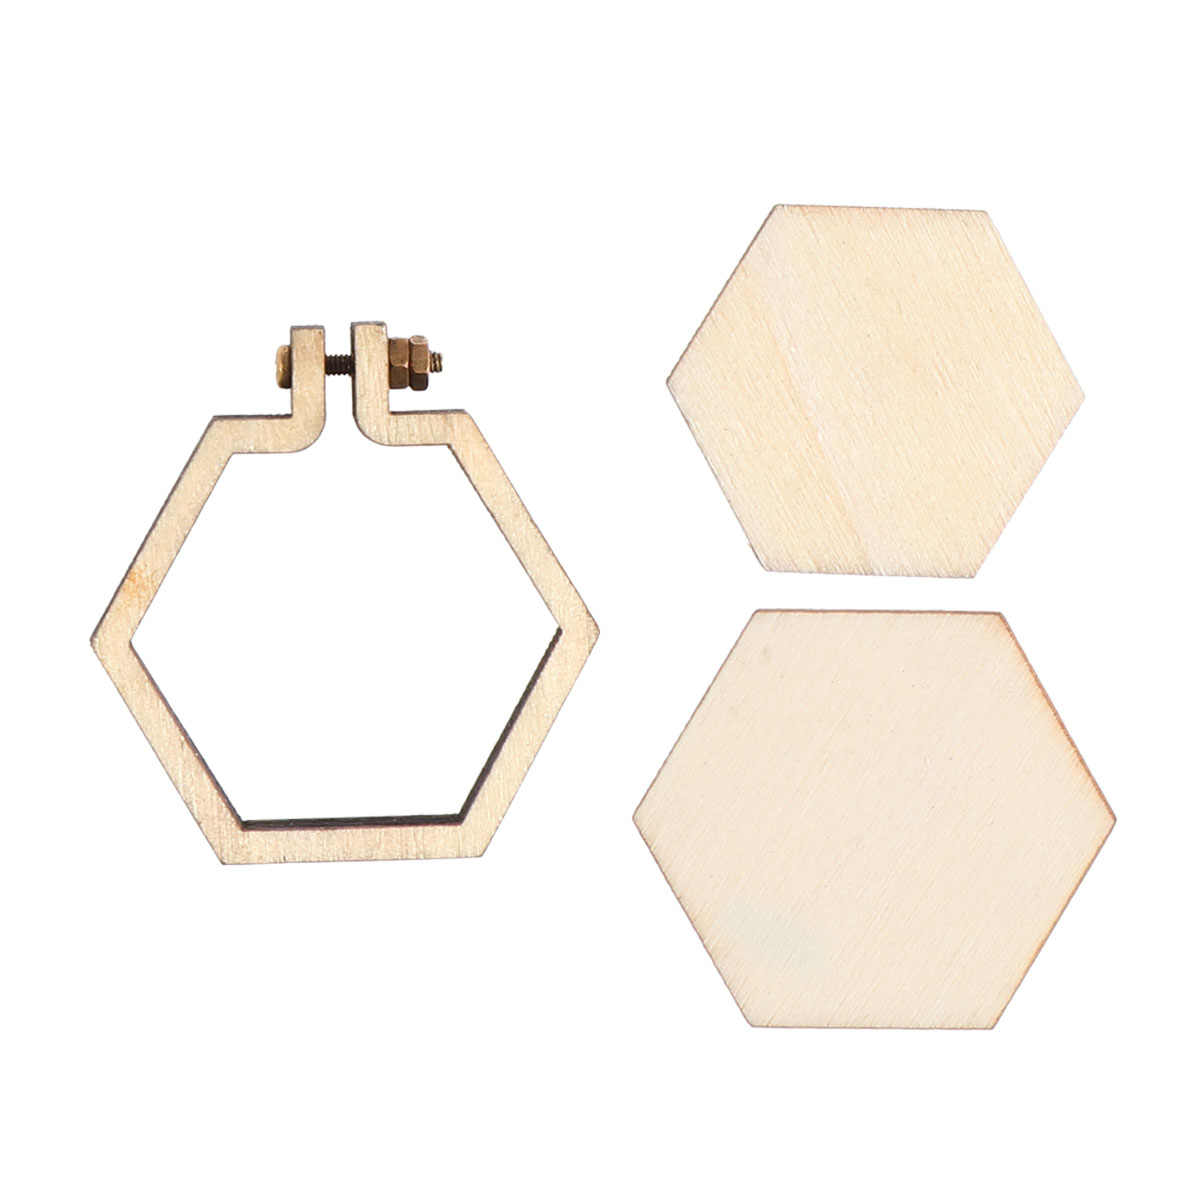 Hexagon Mini Embroidery Hoop Frame Wooden Cross Stitch Hoop Ring DIY Crafts Embroidery Hoops